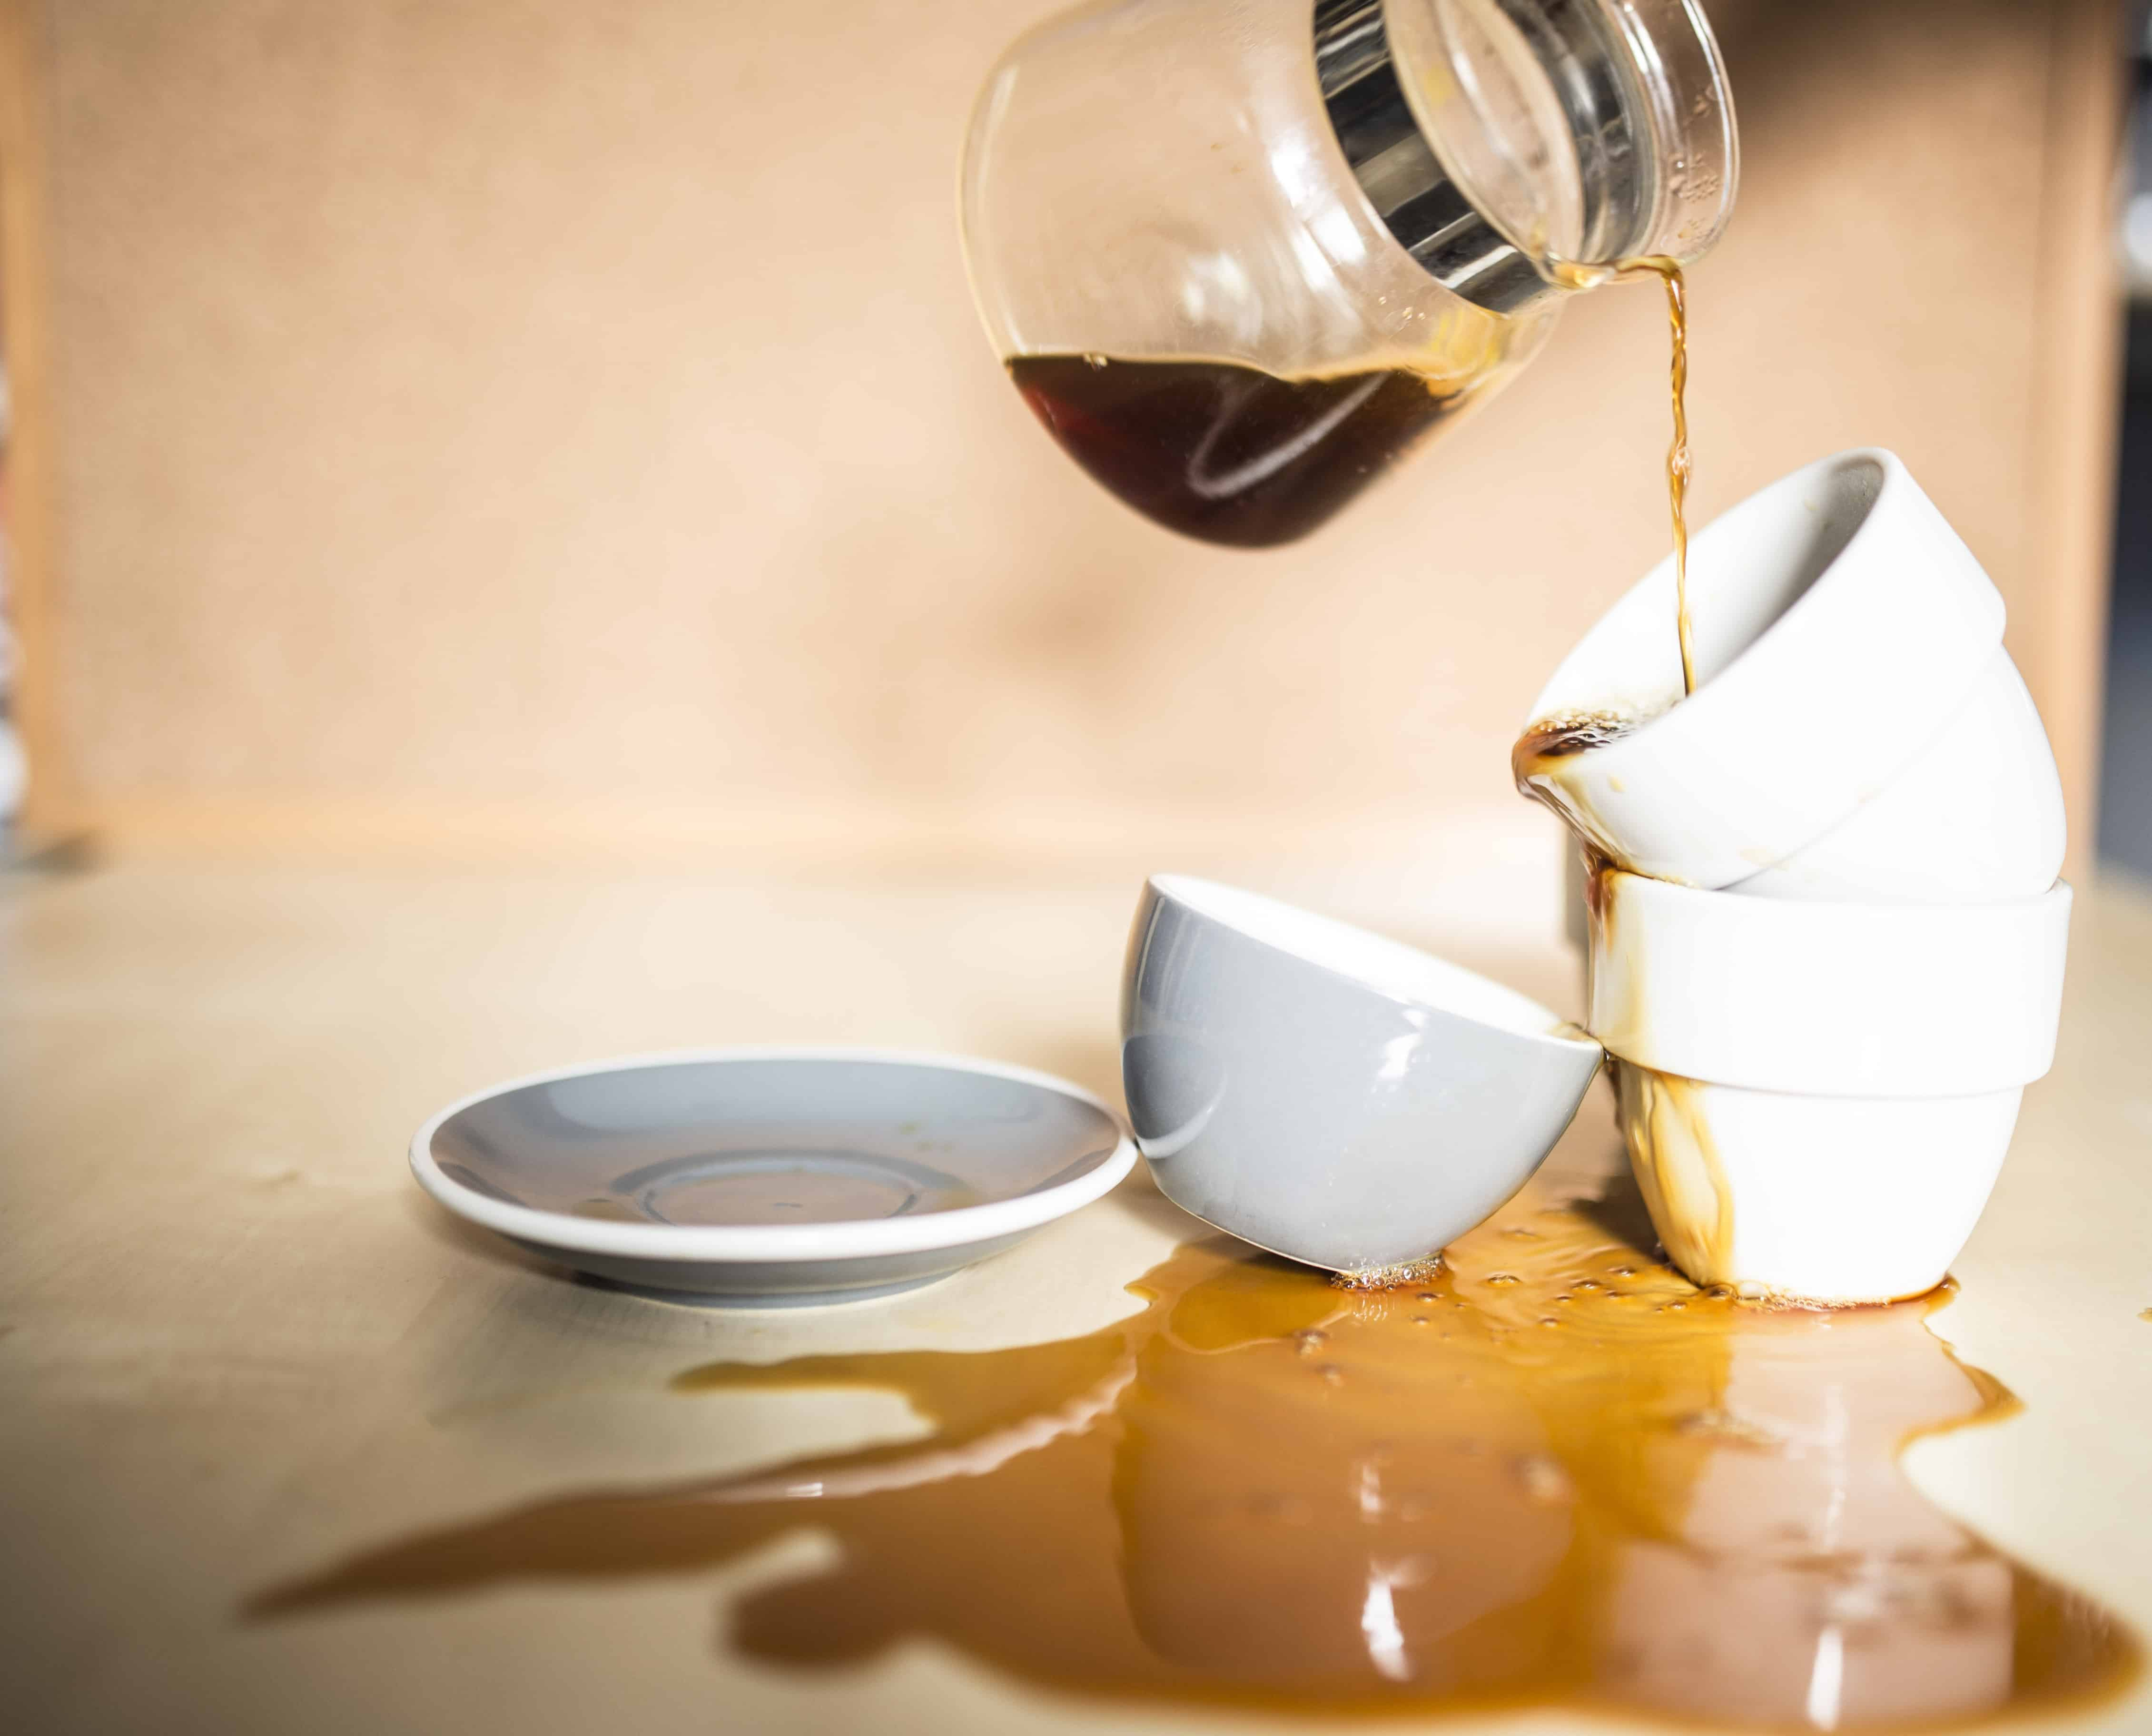 spilling coffee on table and cups